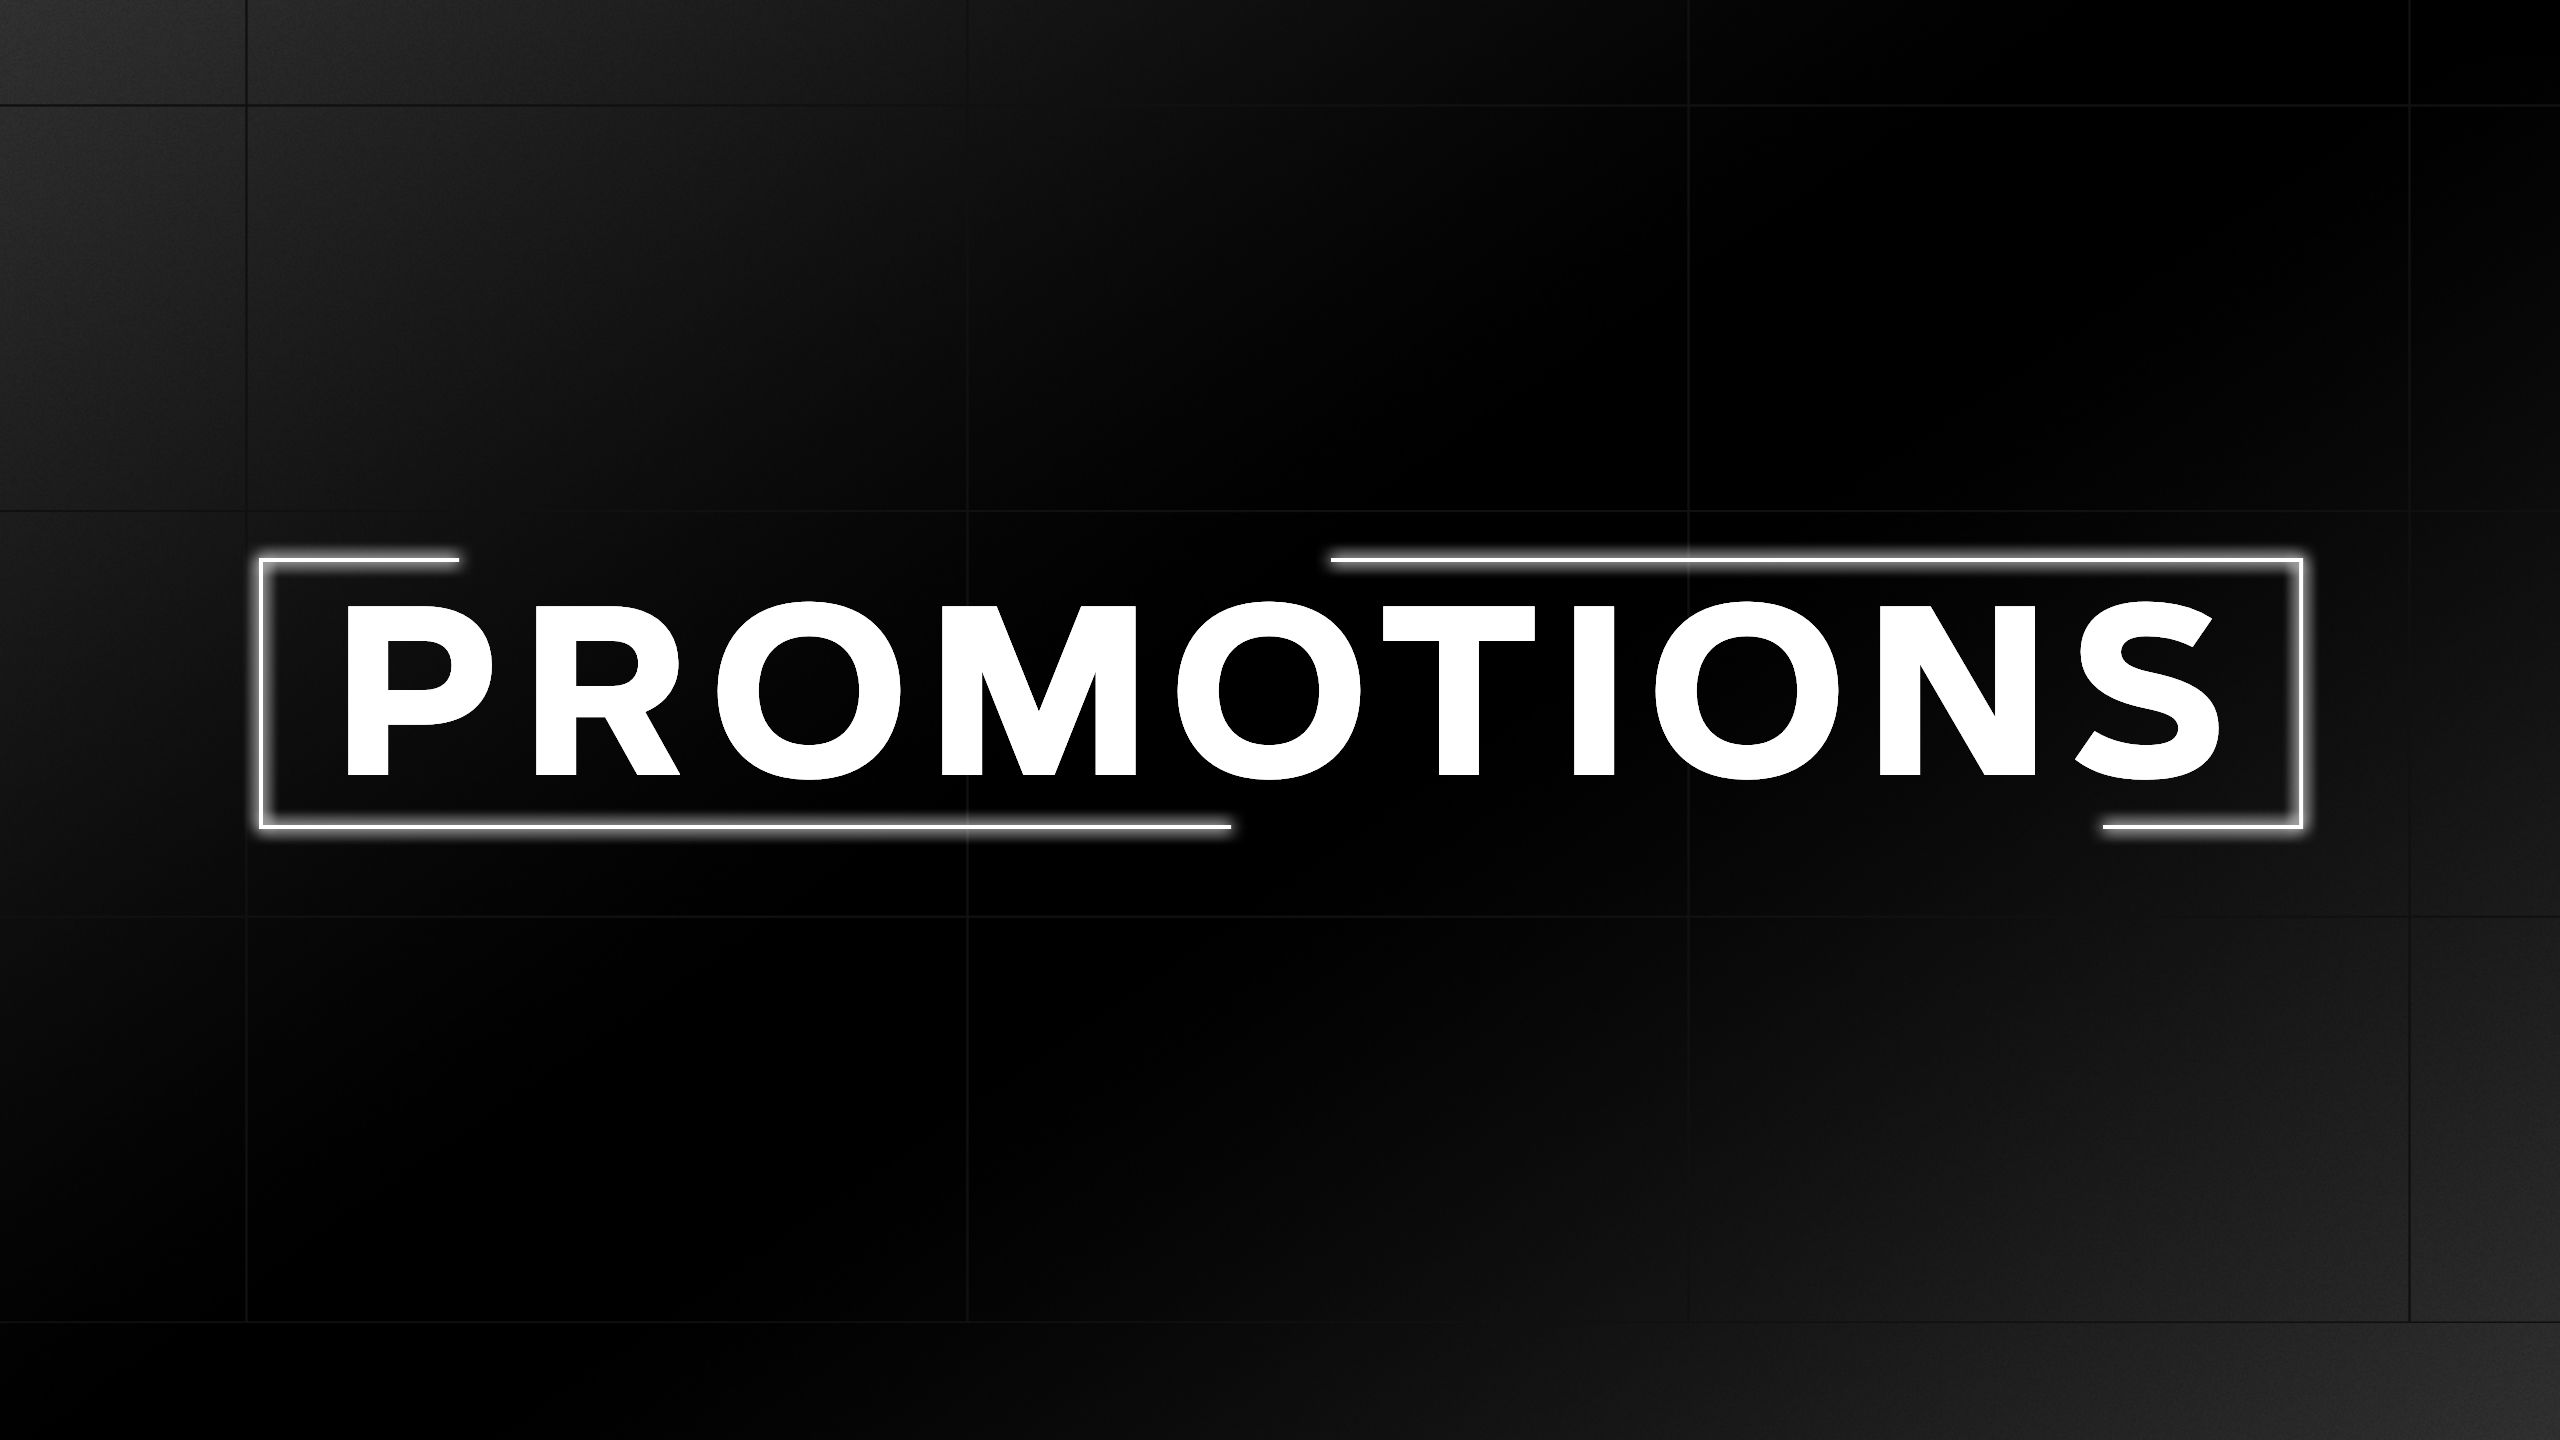 Learn More About Promotions